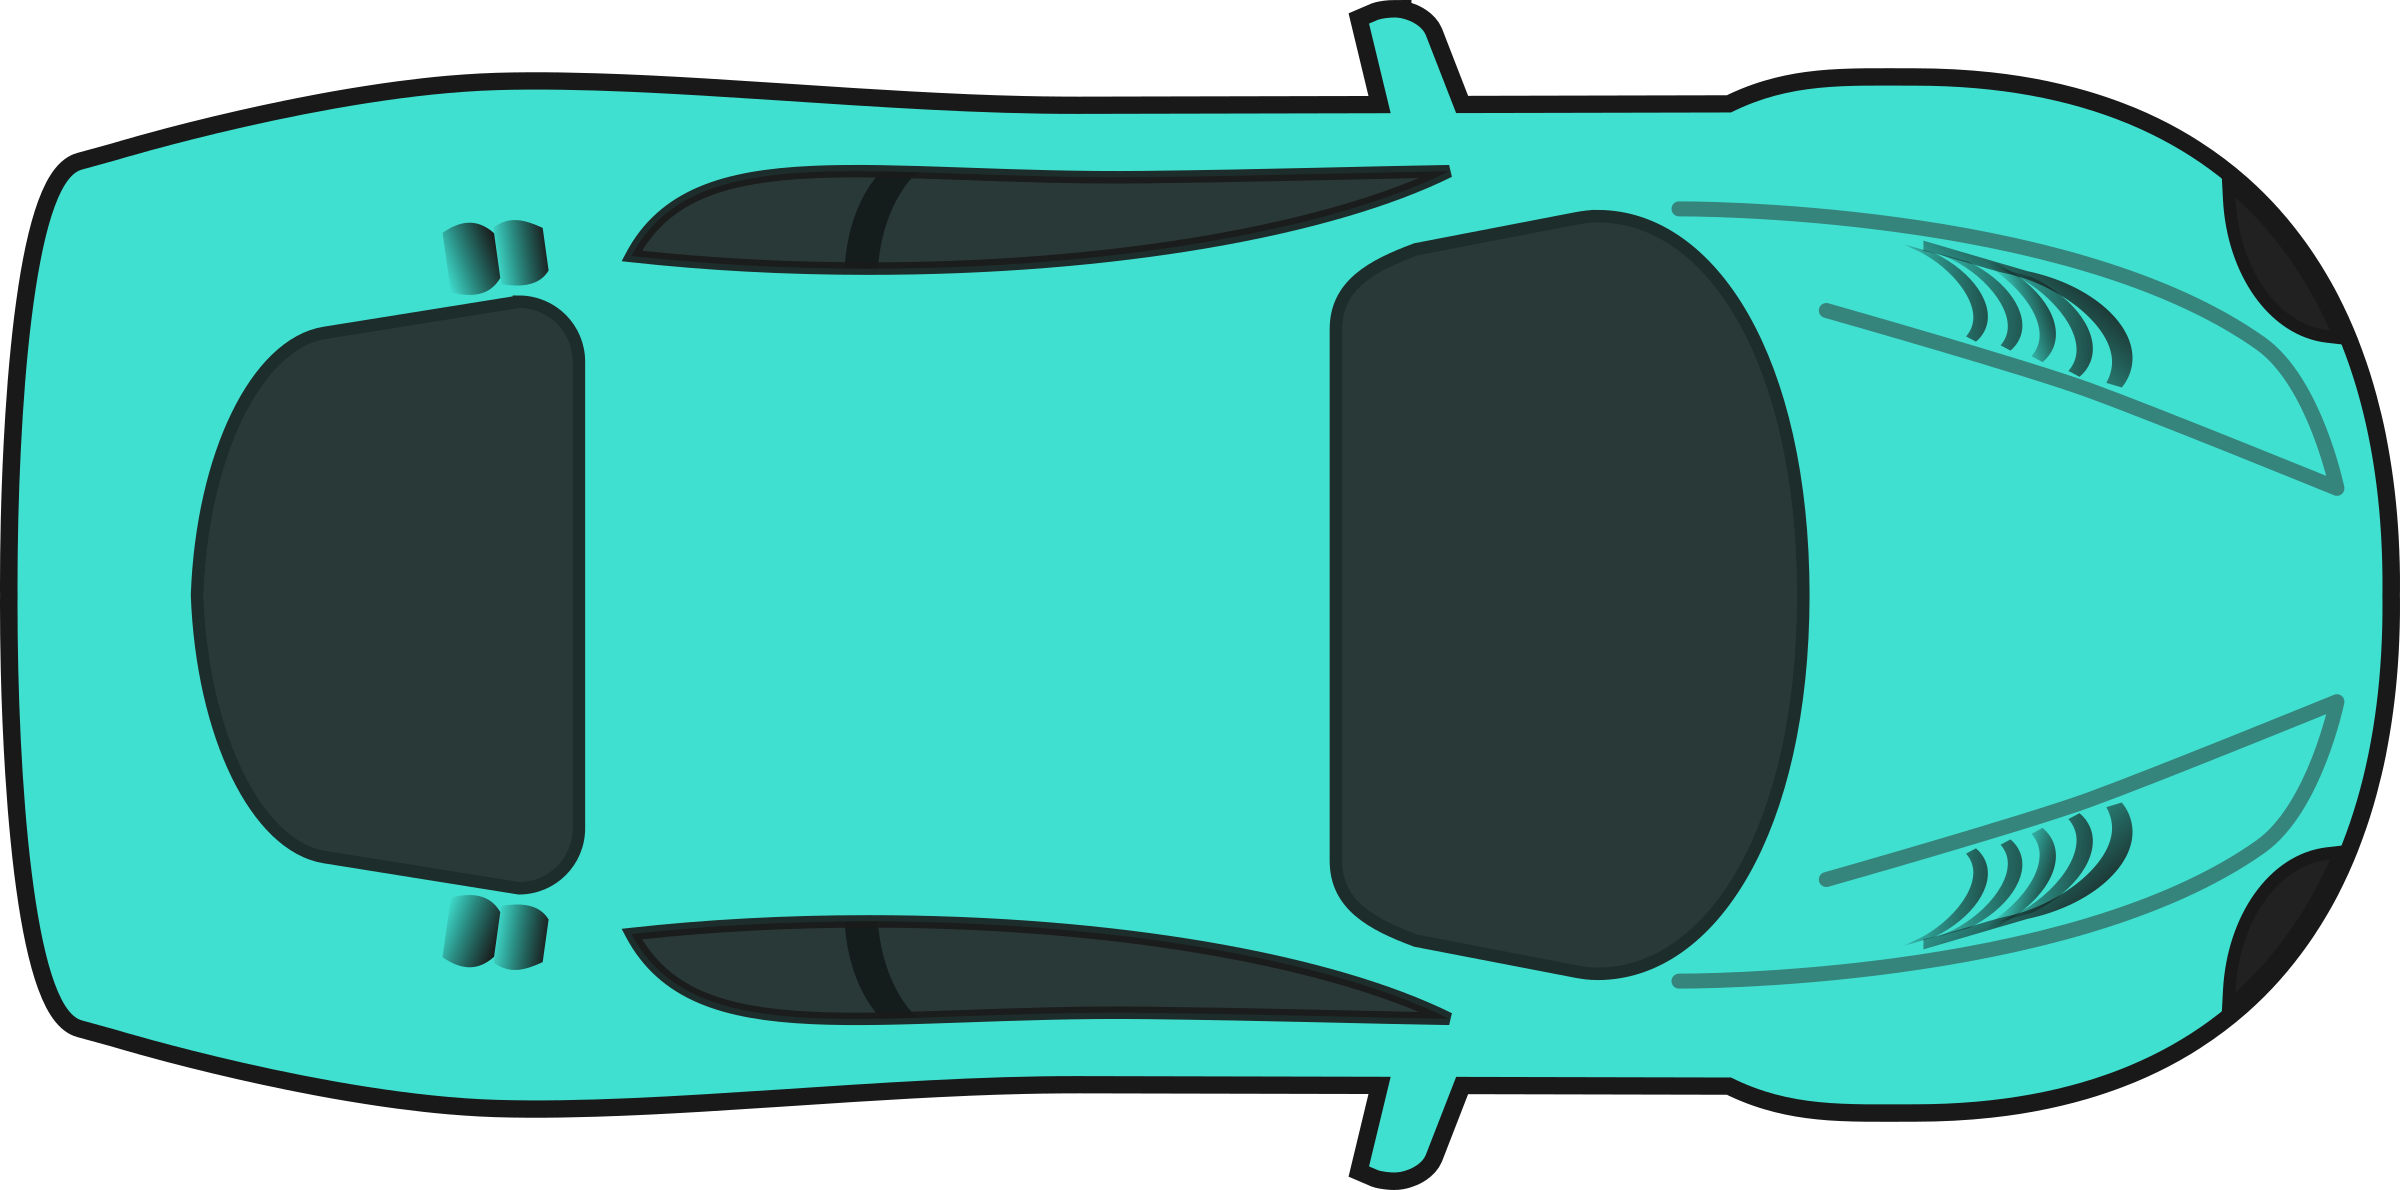 House top view clipart graphic stock Clipart - Turquois Racing Car (Top View) graphic stock